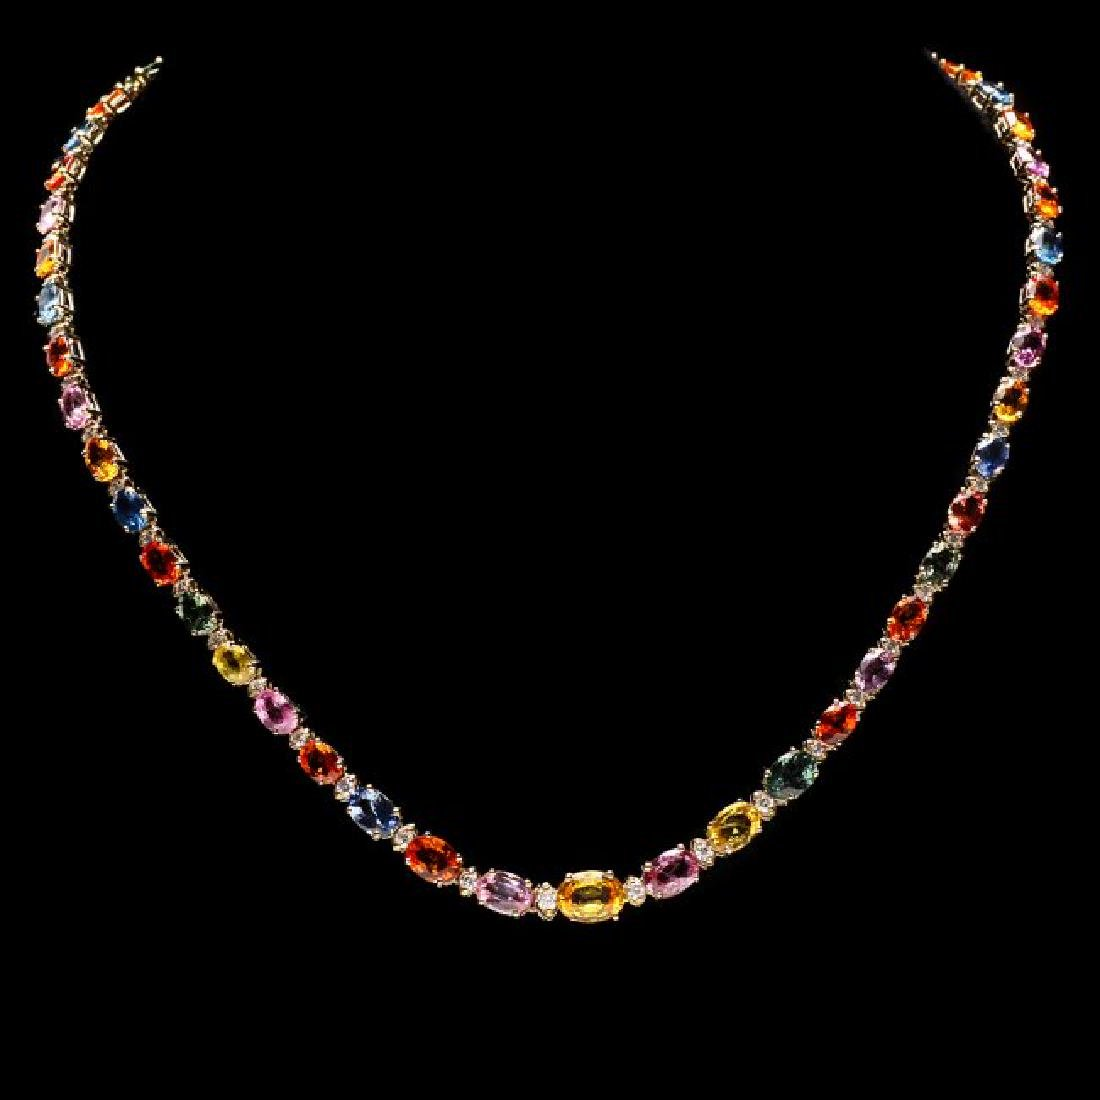 14k Gold 31ct Sapphire 1.4ct Diamond Necklace